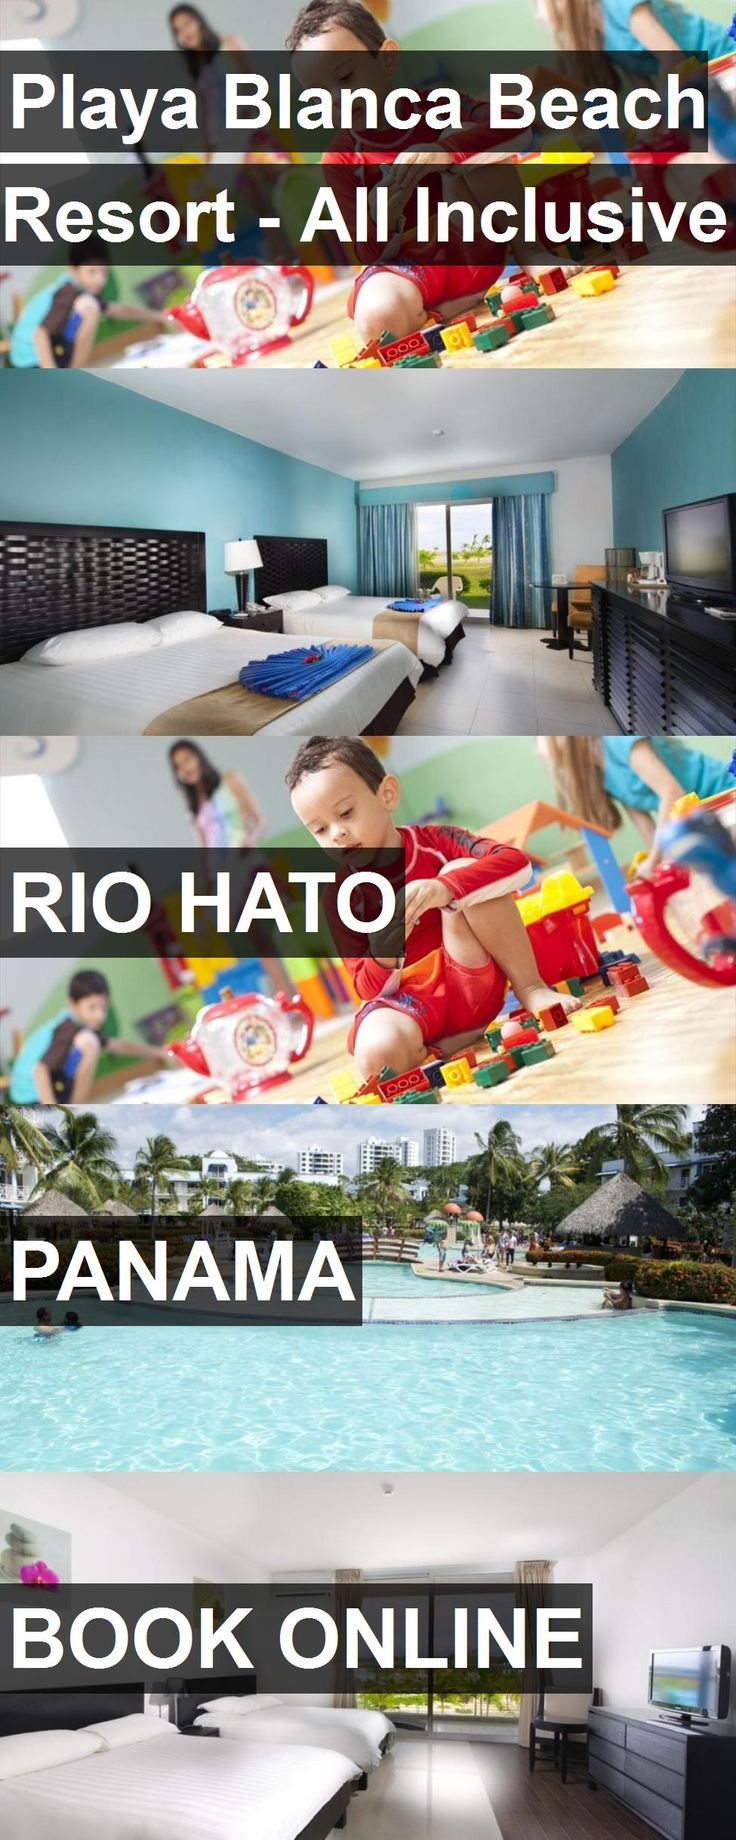 Hotel Playa Blanca Beach Resort - All Inclusive in Rio Hato, Panama. For more information, photos, reviews and best prices please follow the link. #Panama #RioHato #hotel #travel #vacation